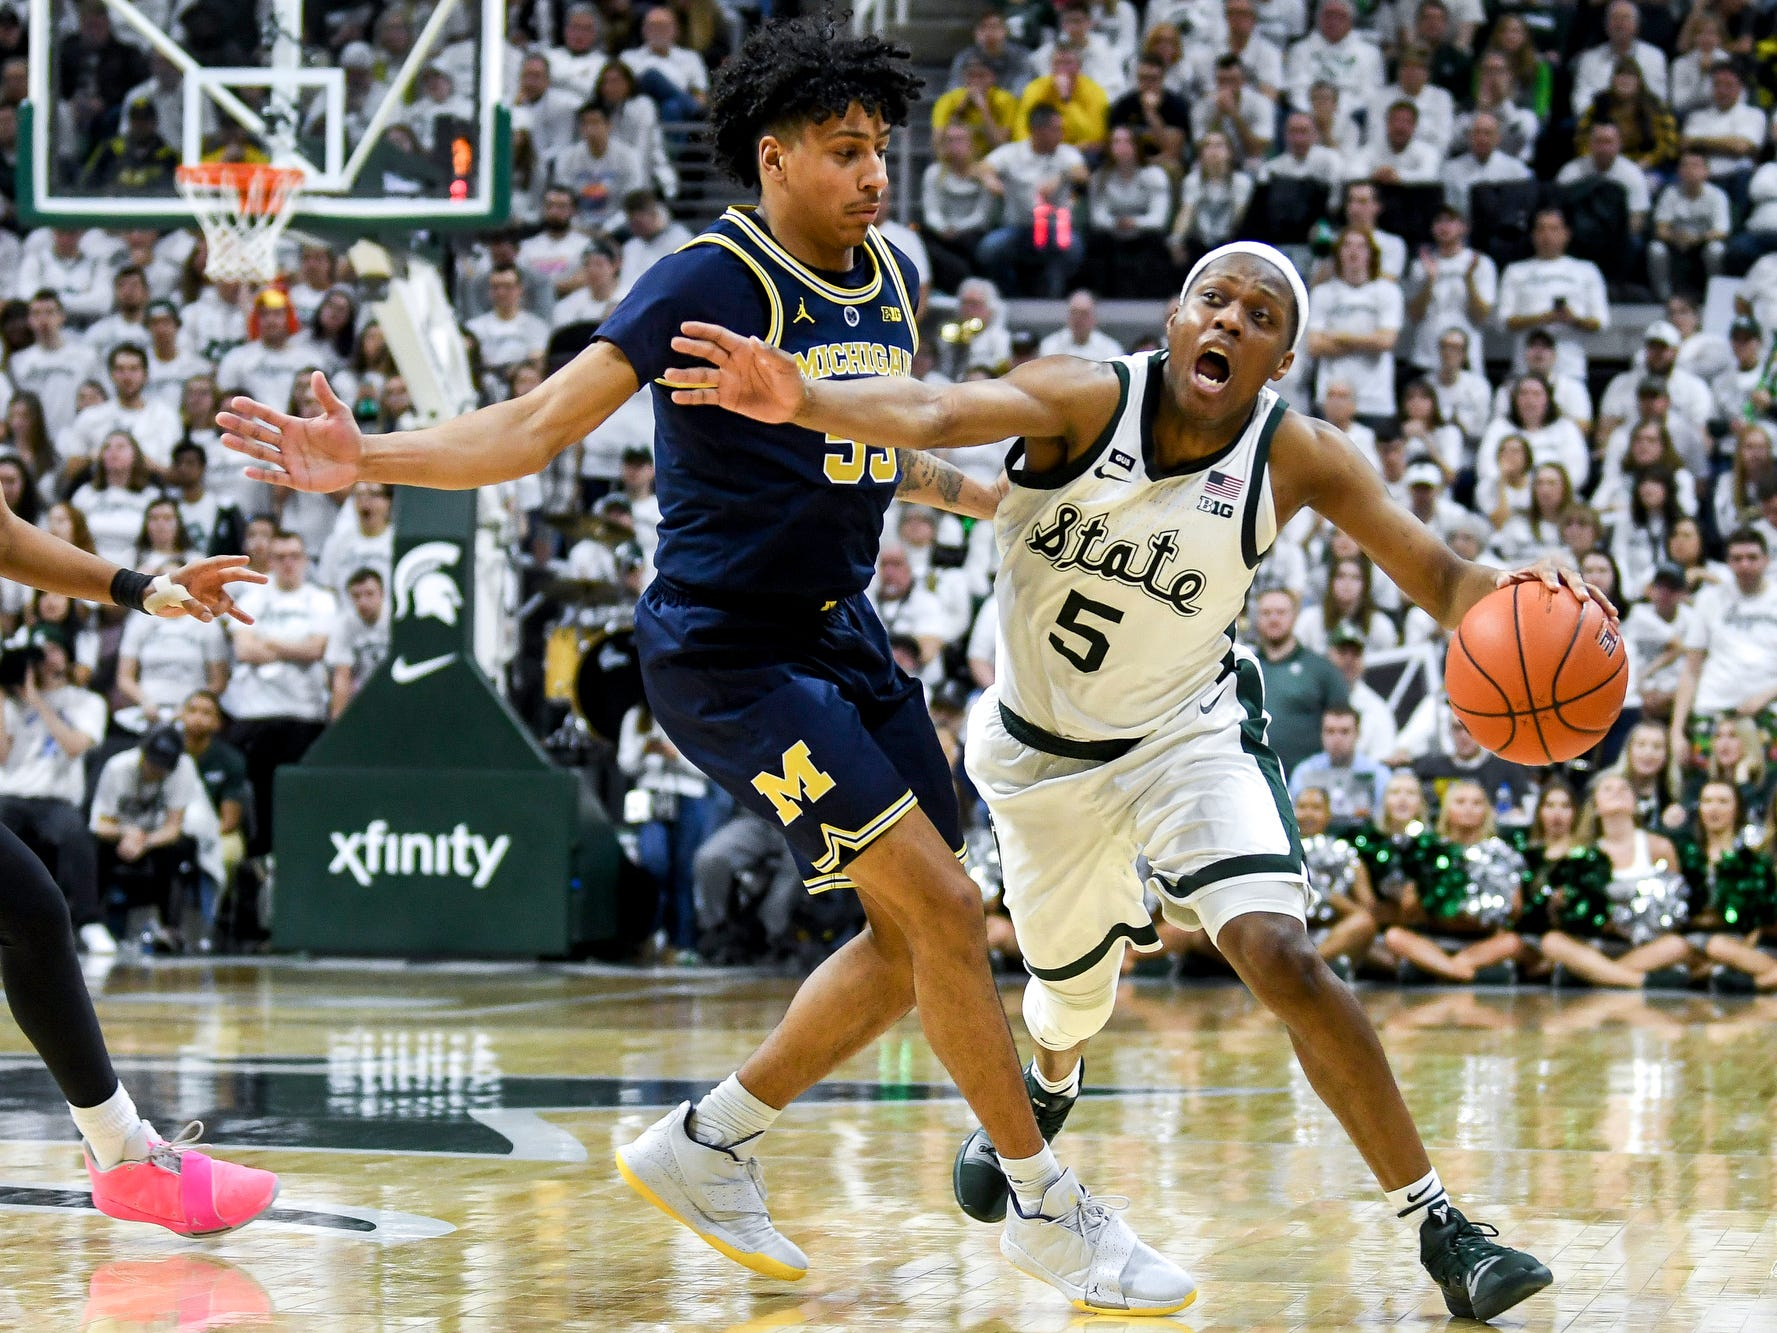 Michigan State's Cassius Winston, right, moves past Michigan's Eli Brooks during the second half on Saturday, March 9, 2019, at the Breslin Center in East Lansing.